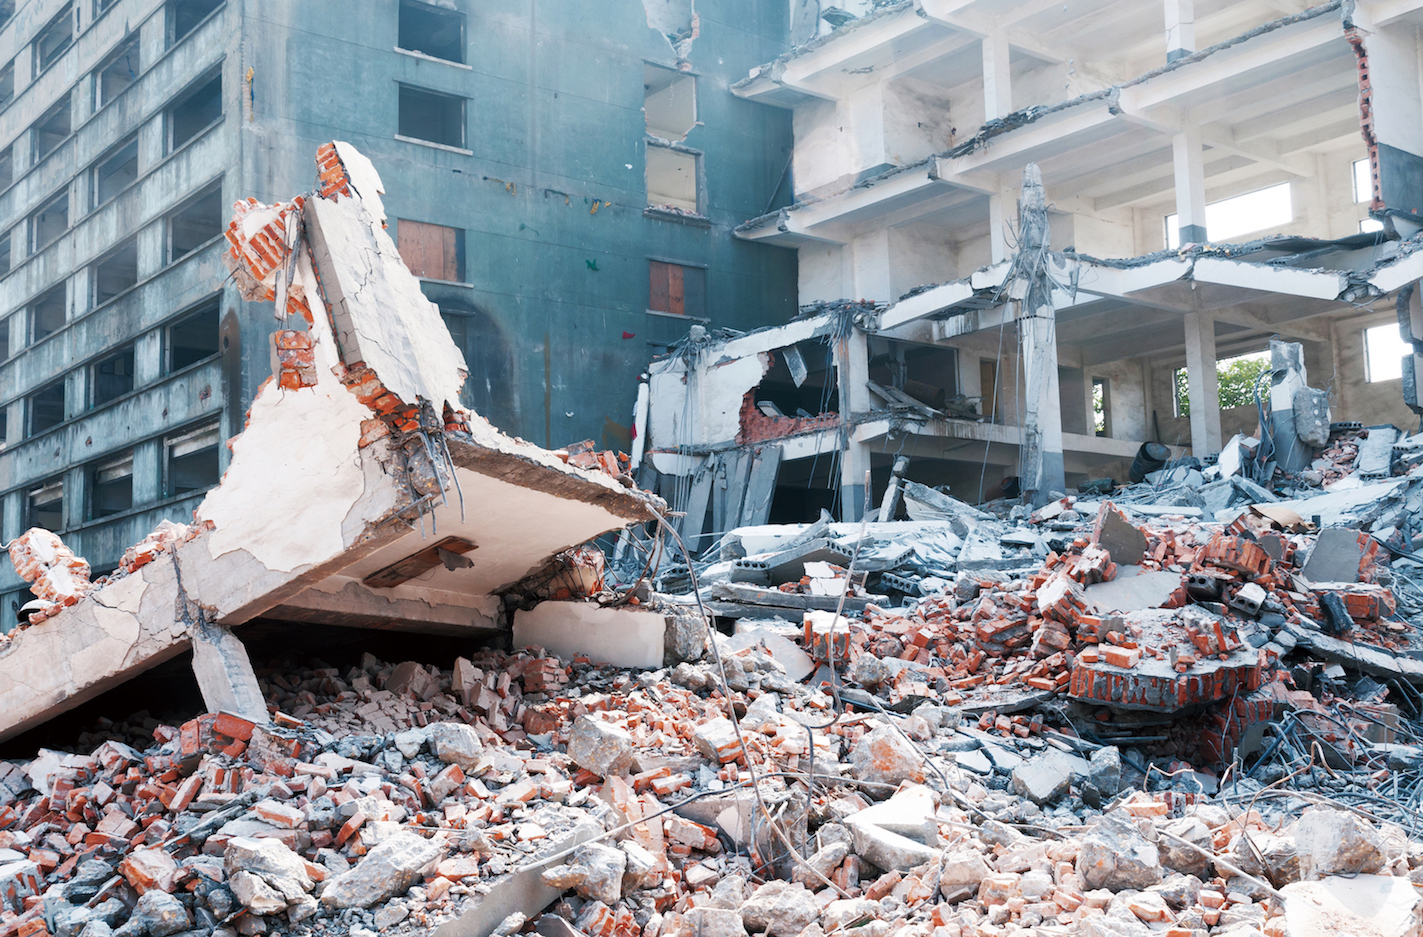 Often times, the real tragedy after an earthquake is that better communications and response might have reduced the body count considerably.